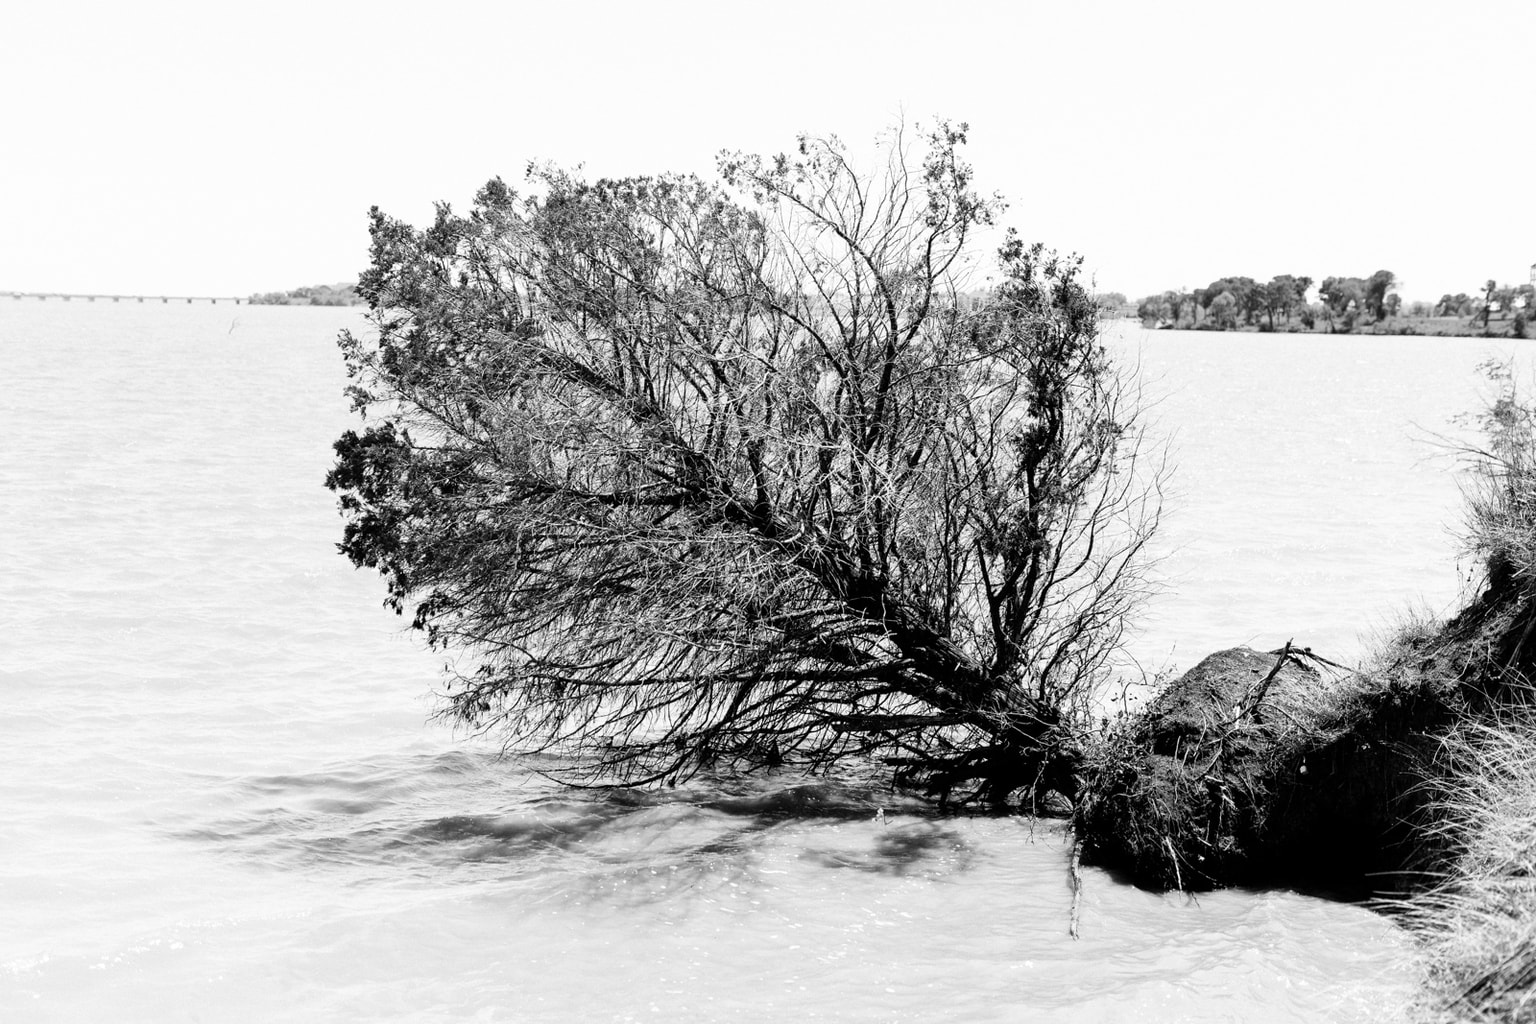 Silhouette of a tree in the lake